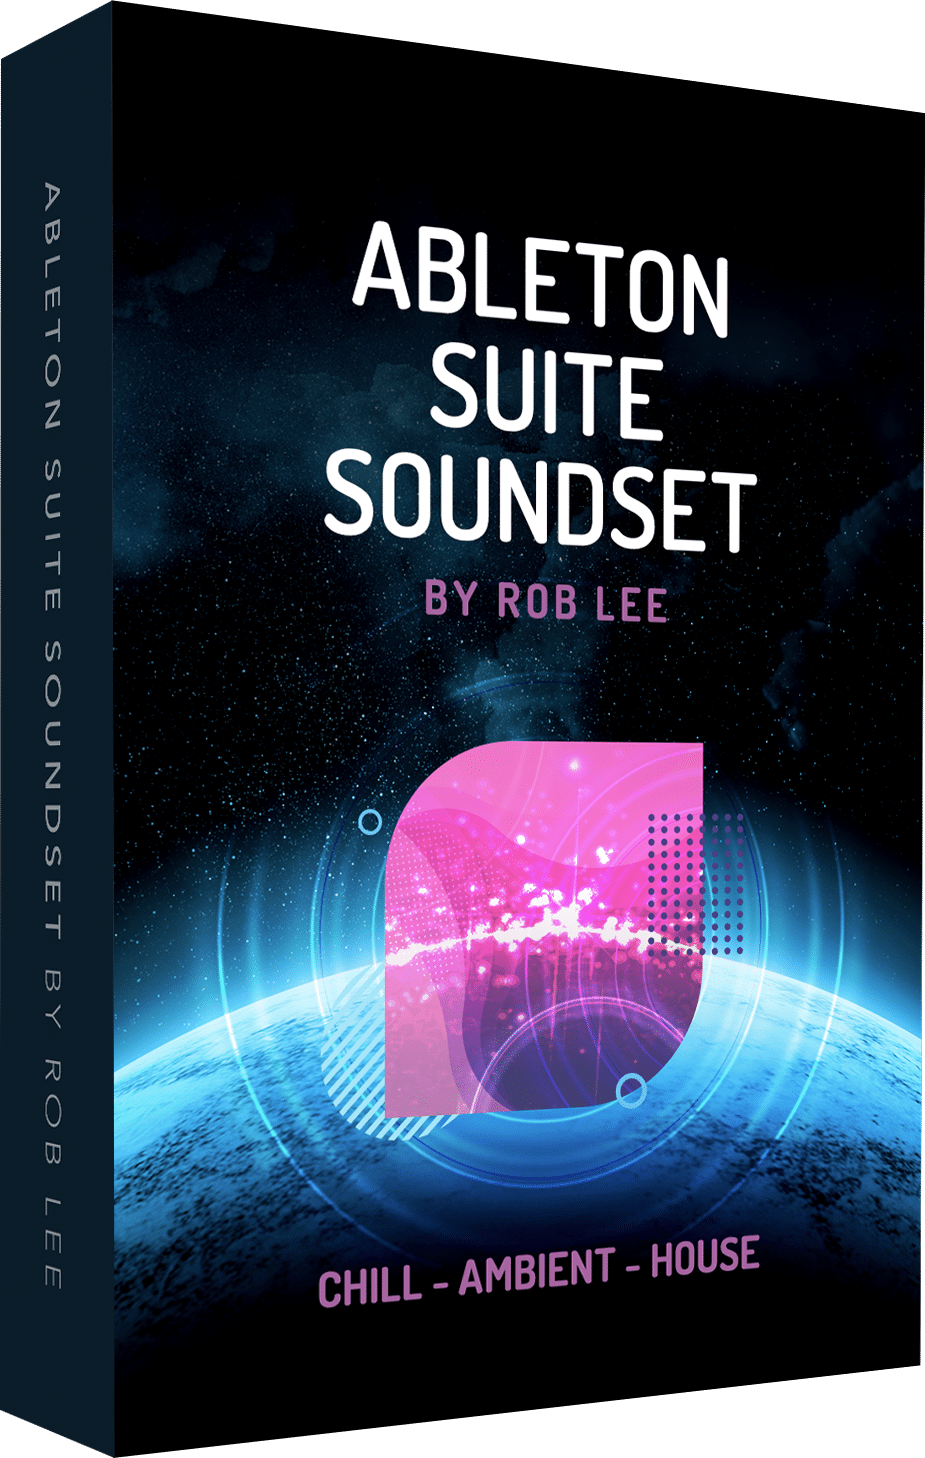 Ableton Suite Soundset